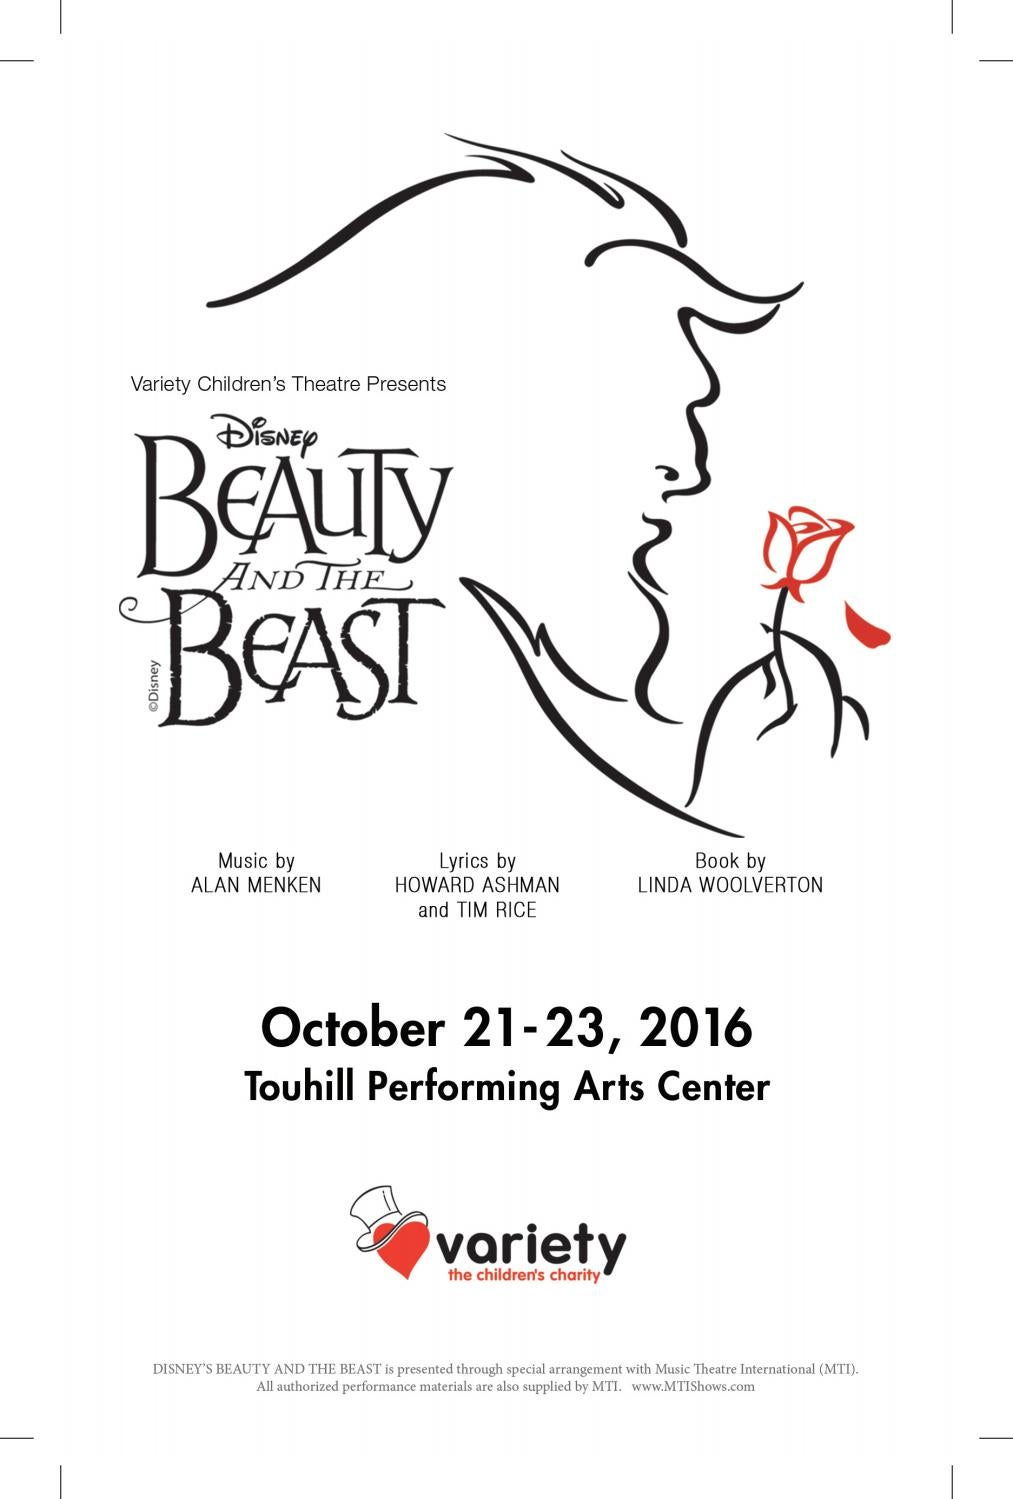 Variety Children's Theatre 2016 Playbill by Variety the